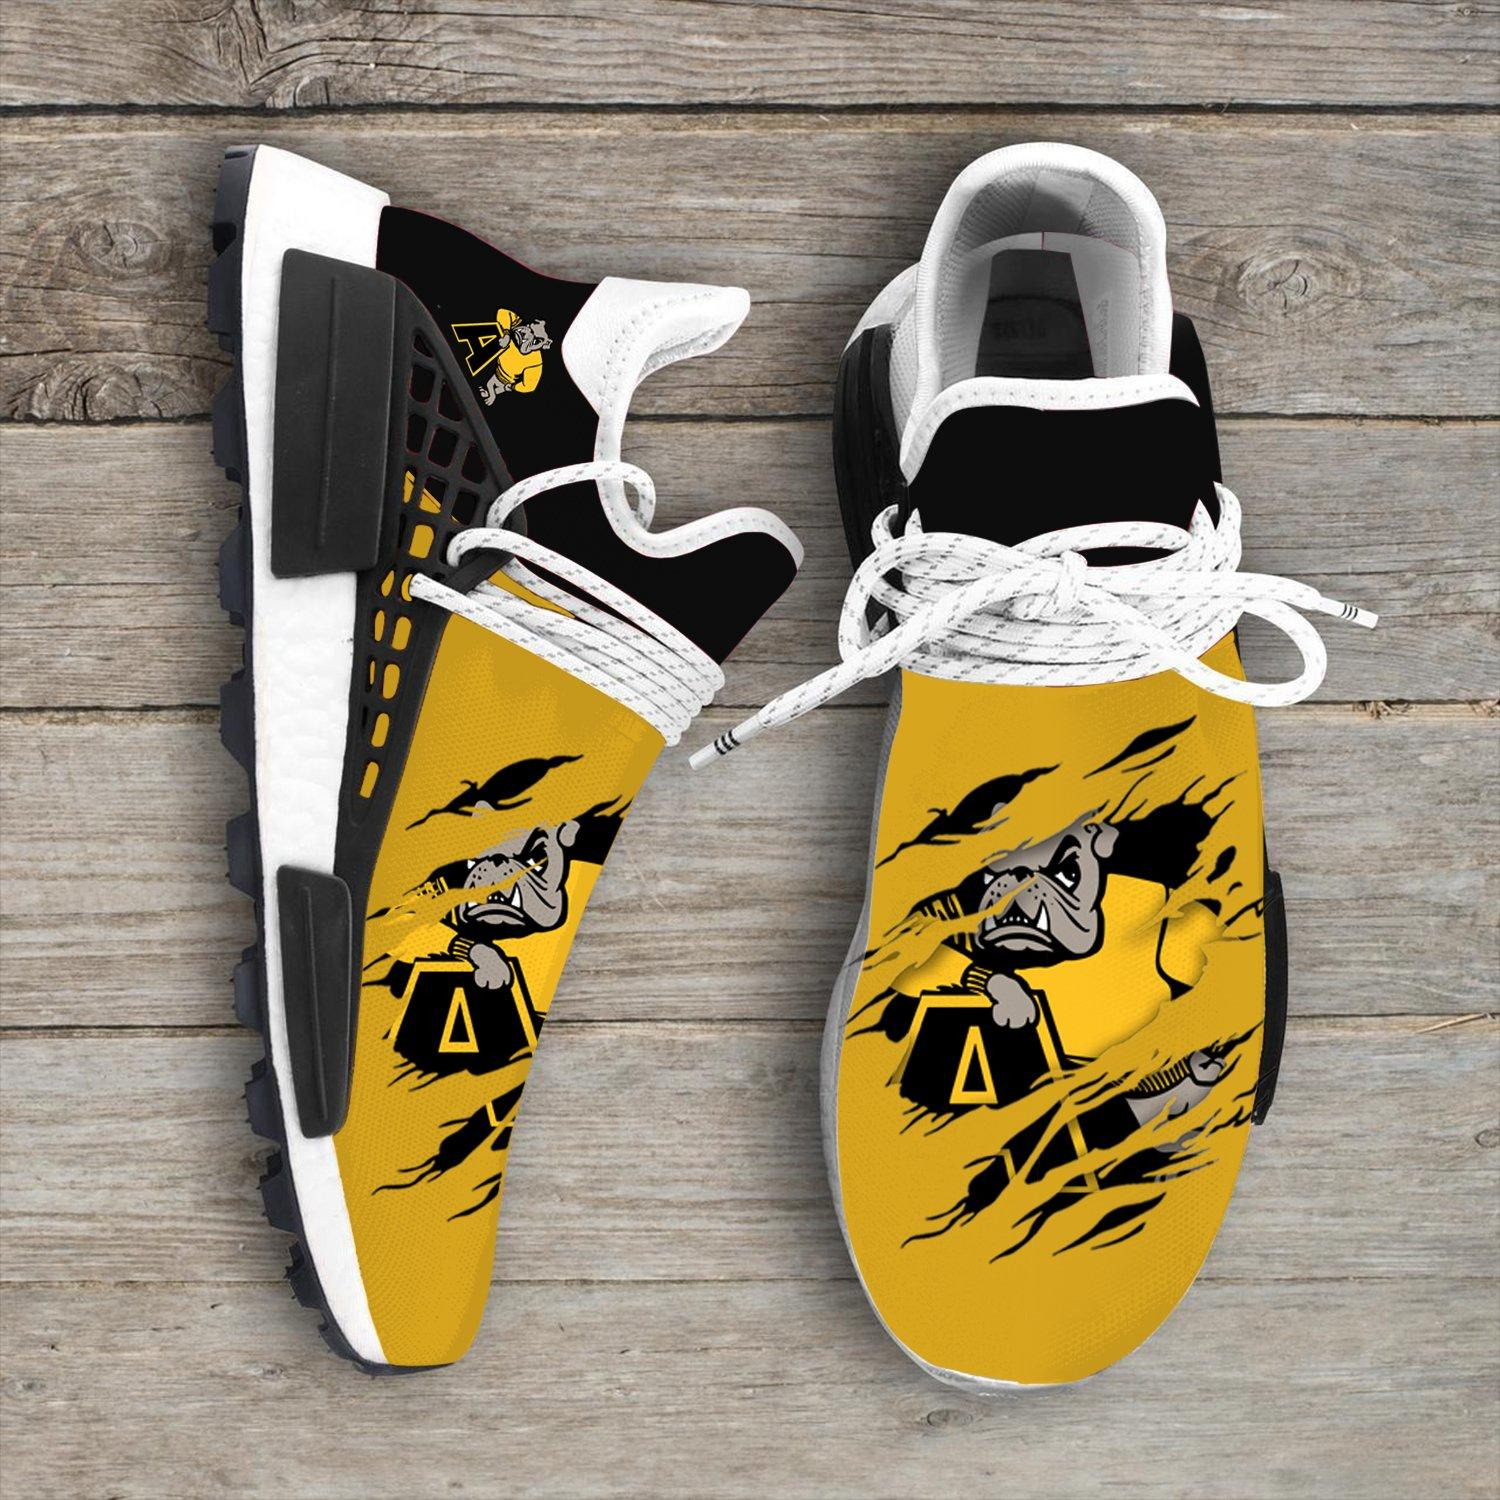 Adrian College Bulldogs NCAA Sport Teams NMD Human Race Sneakers Shoes 2020